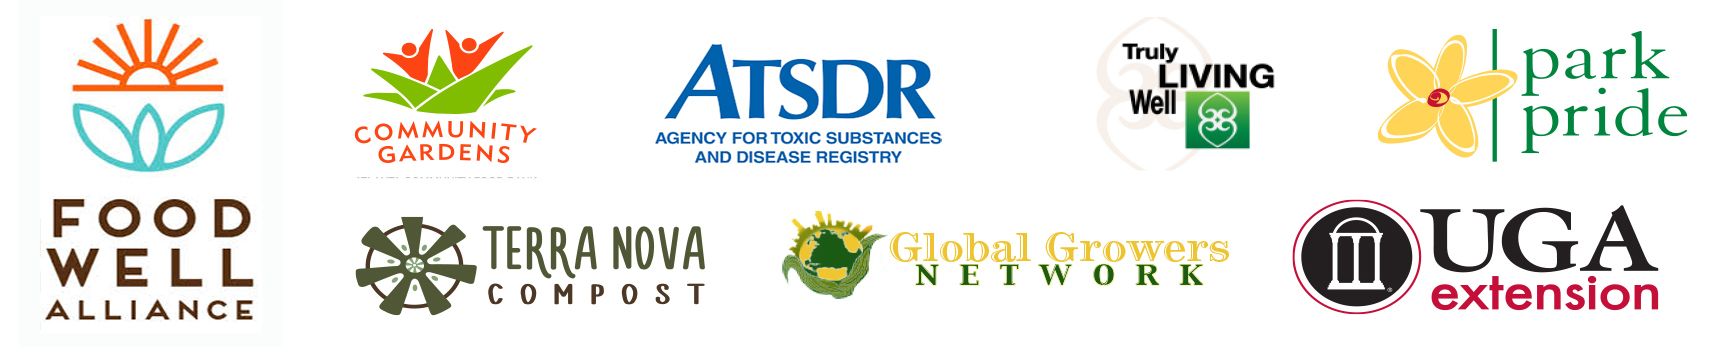 "The mark ""ATSDR"" is own by the U.S. Department of Health and Human Services and is used with permission. Use of this logo is not an endorsement by HHS or ATSDR of any particular product, service."